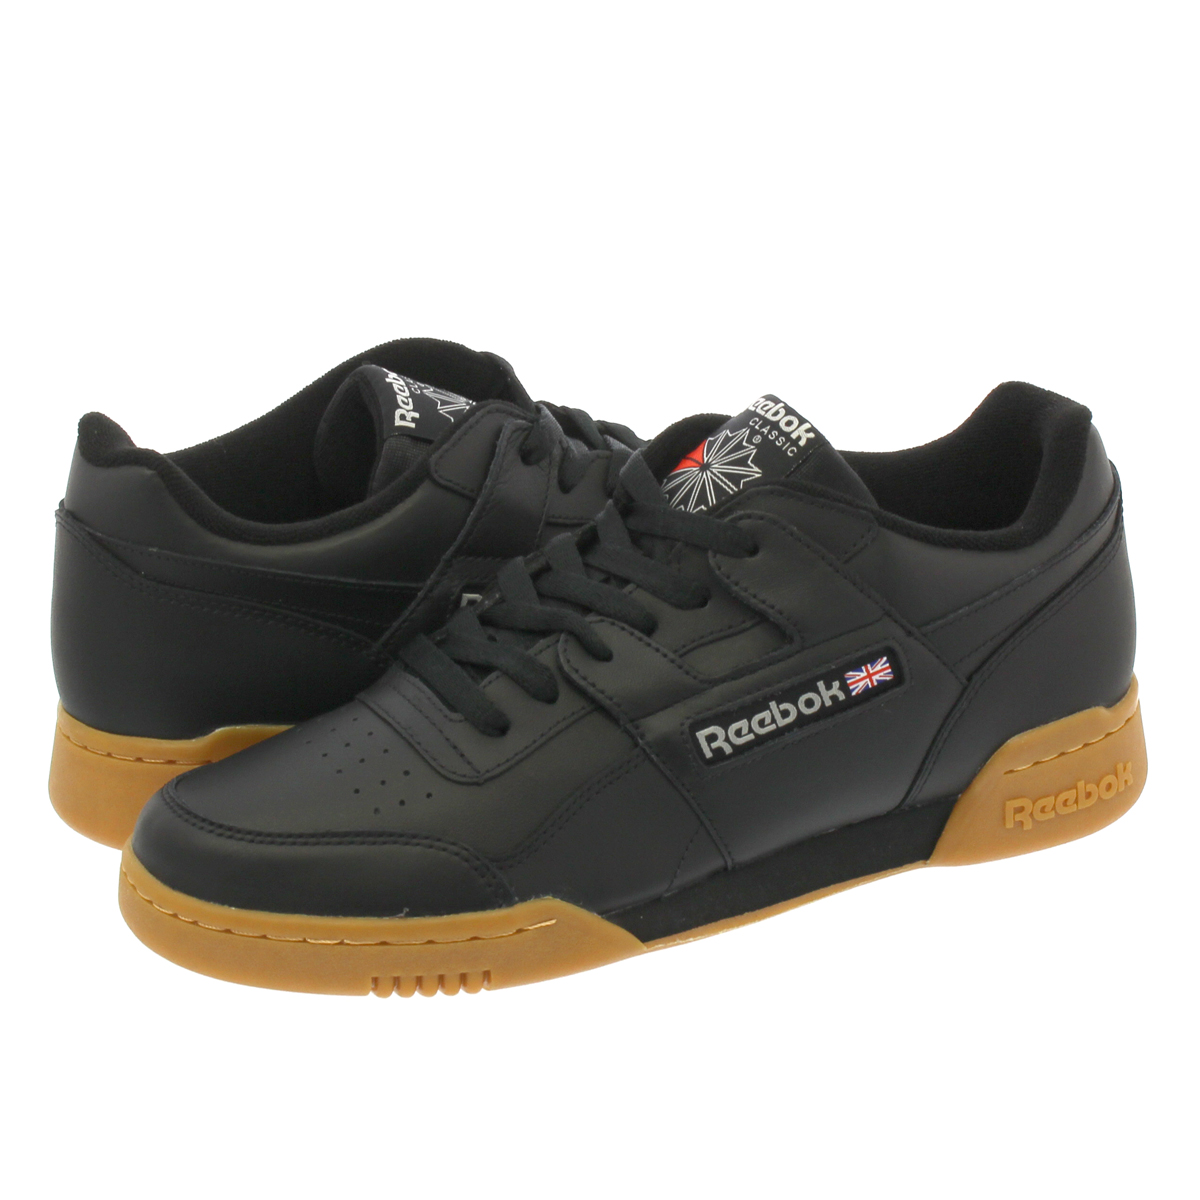 2d417fcd15cbcc SELECT SHOP LOWTEX  Reebok WORKOUT PLUS Reebok practice game plus ...